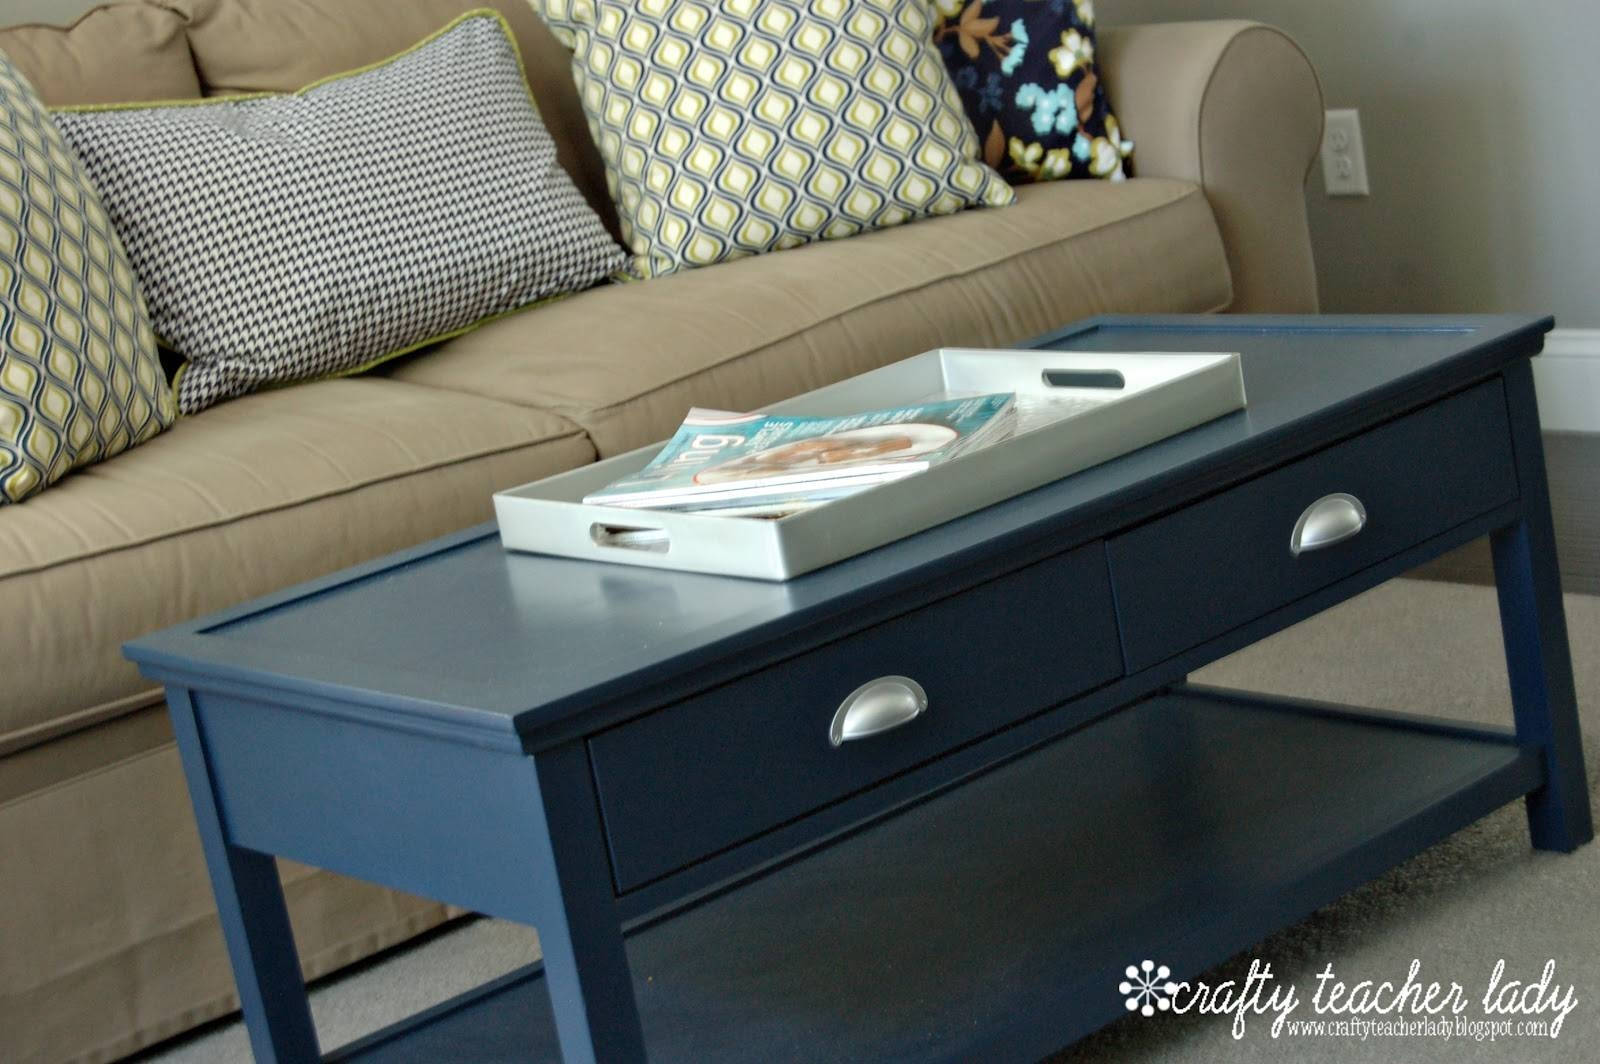 Crafty Teacher Lady: Coffee Table Makeover pertaining to Blue Coffee Tables (Image 19 of 30)